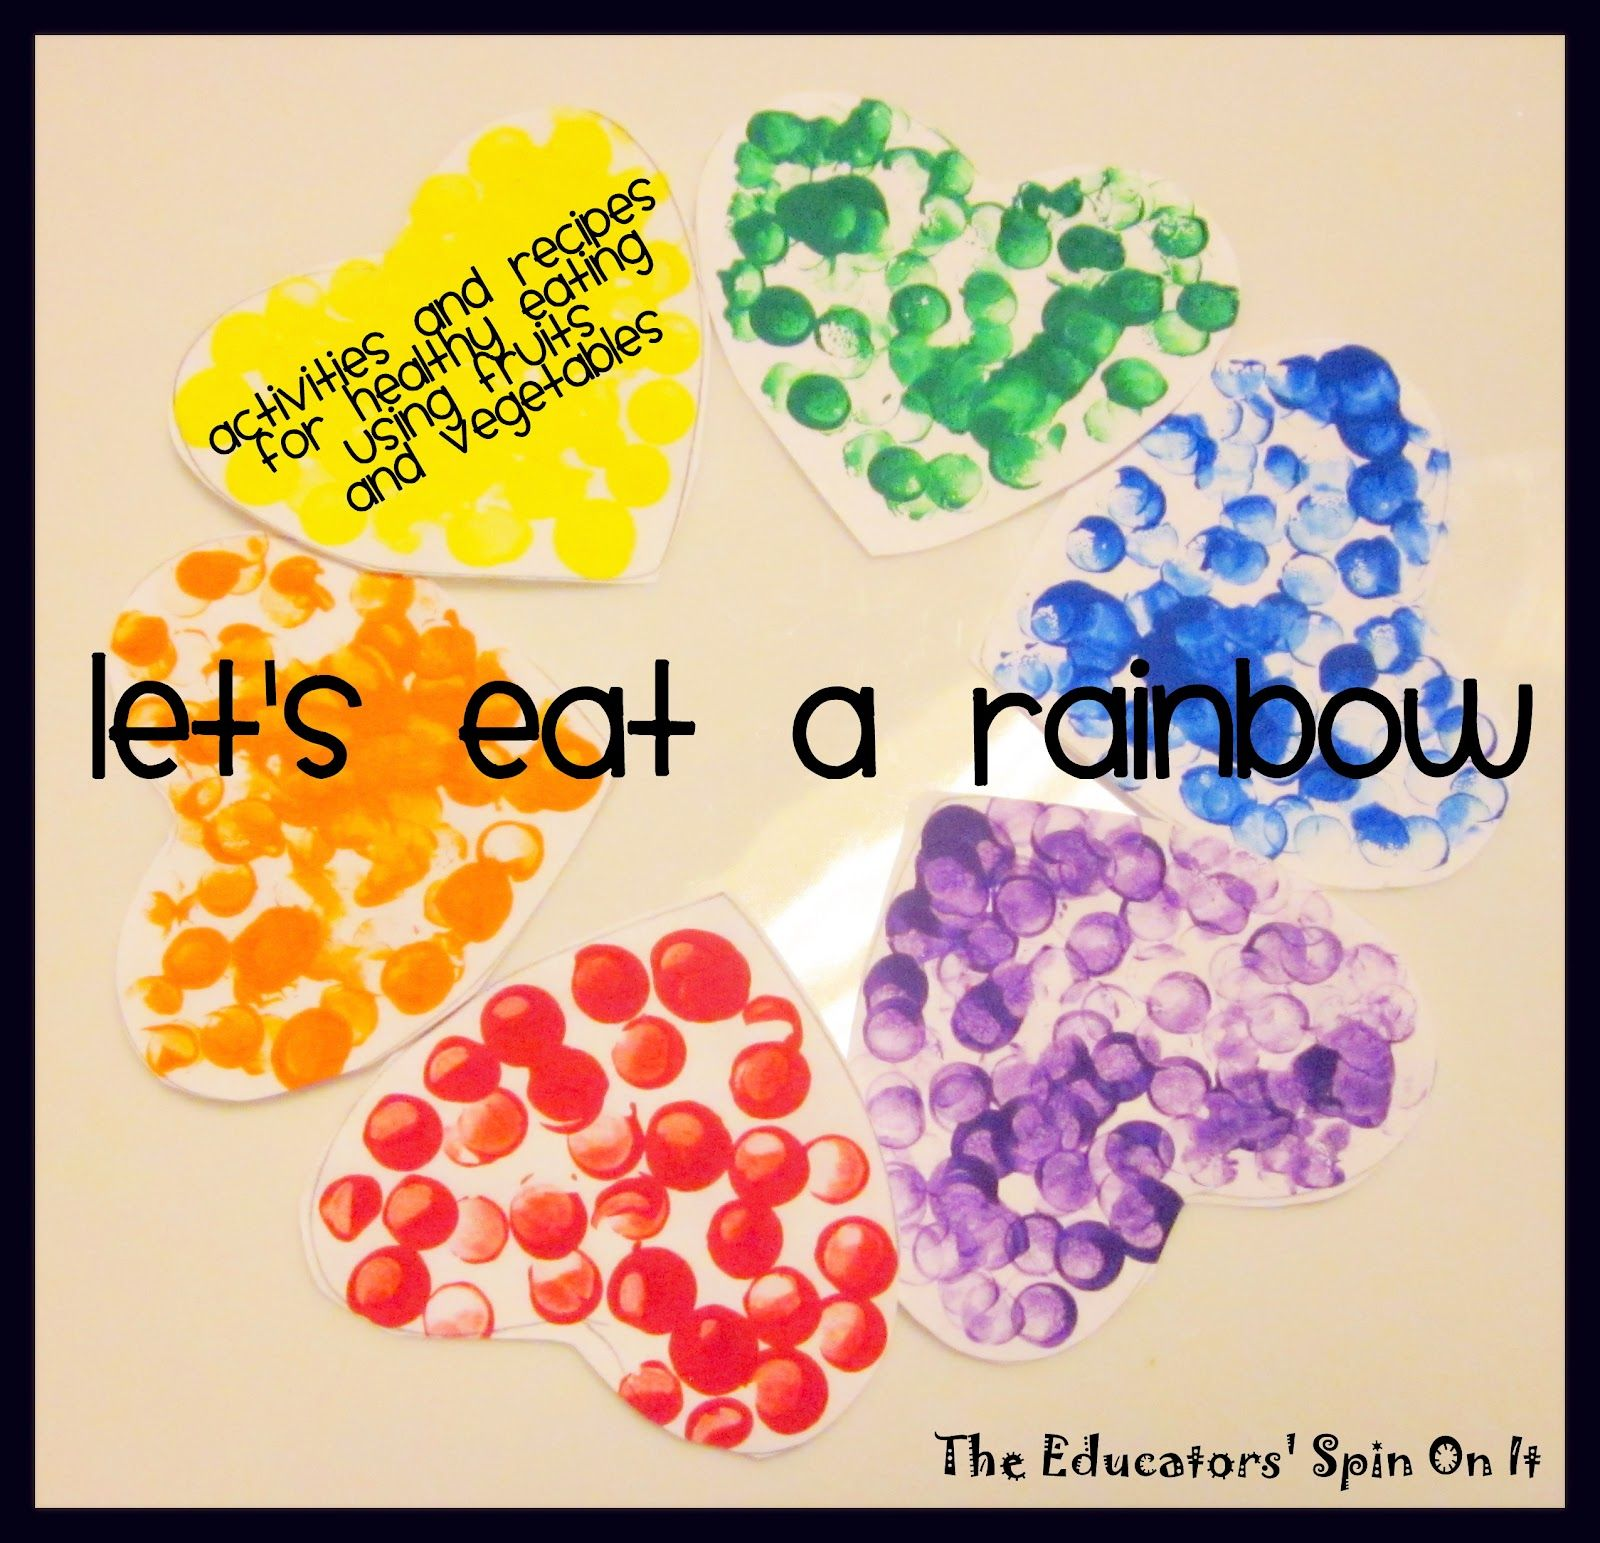 Little Hands That Cook with Books Let's eat a RAINBOW